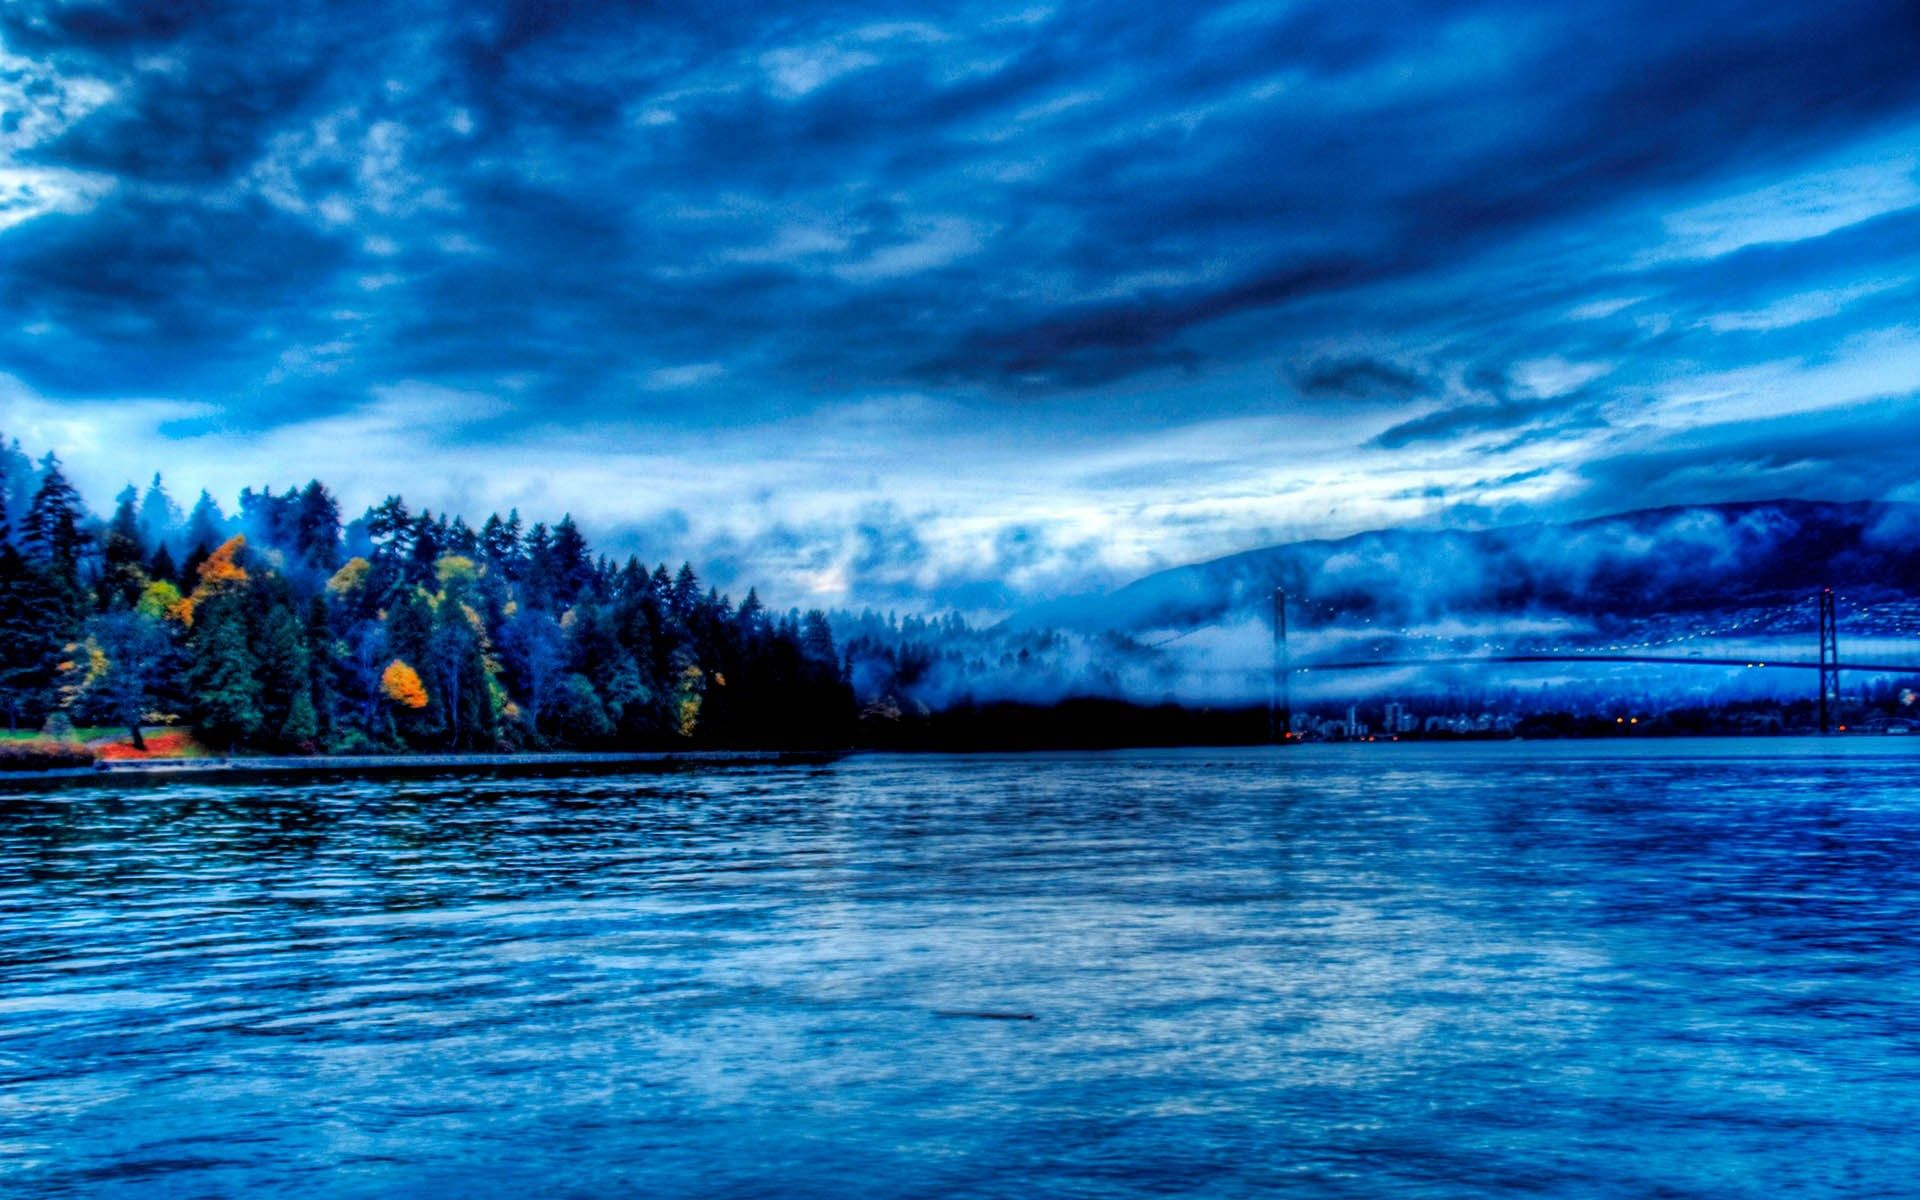 Awesome Amazing Wallpaper Hd 3d Abstract In High Quality Scenery Wallpaper Nature Wallpaper Blue Water Wallpaper